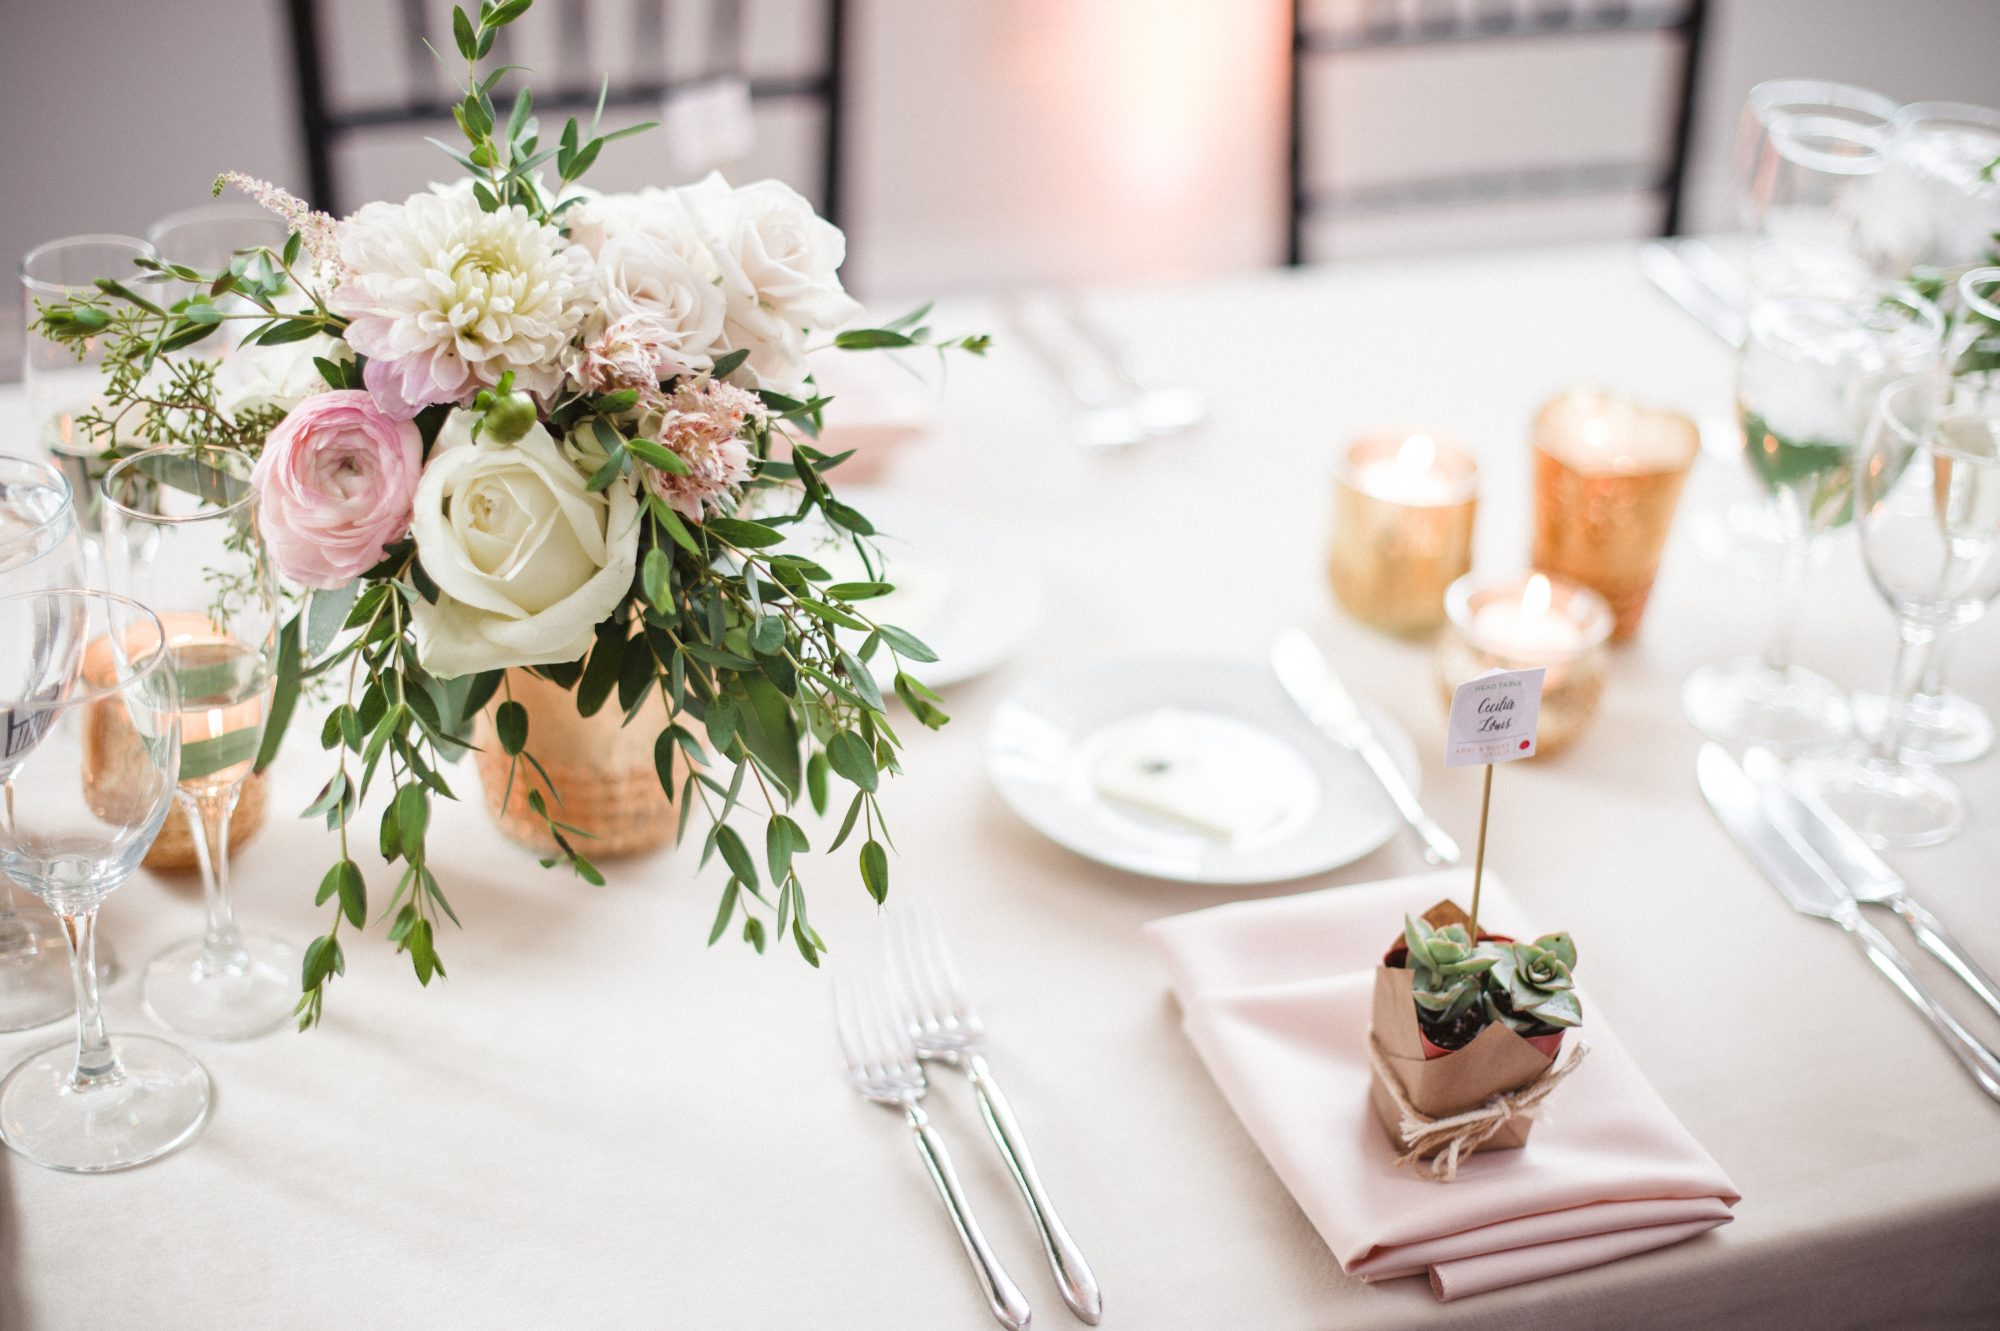 10 Questions To Ask Your Wedding Caterer